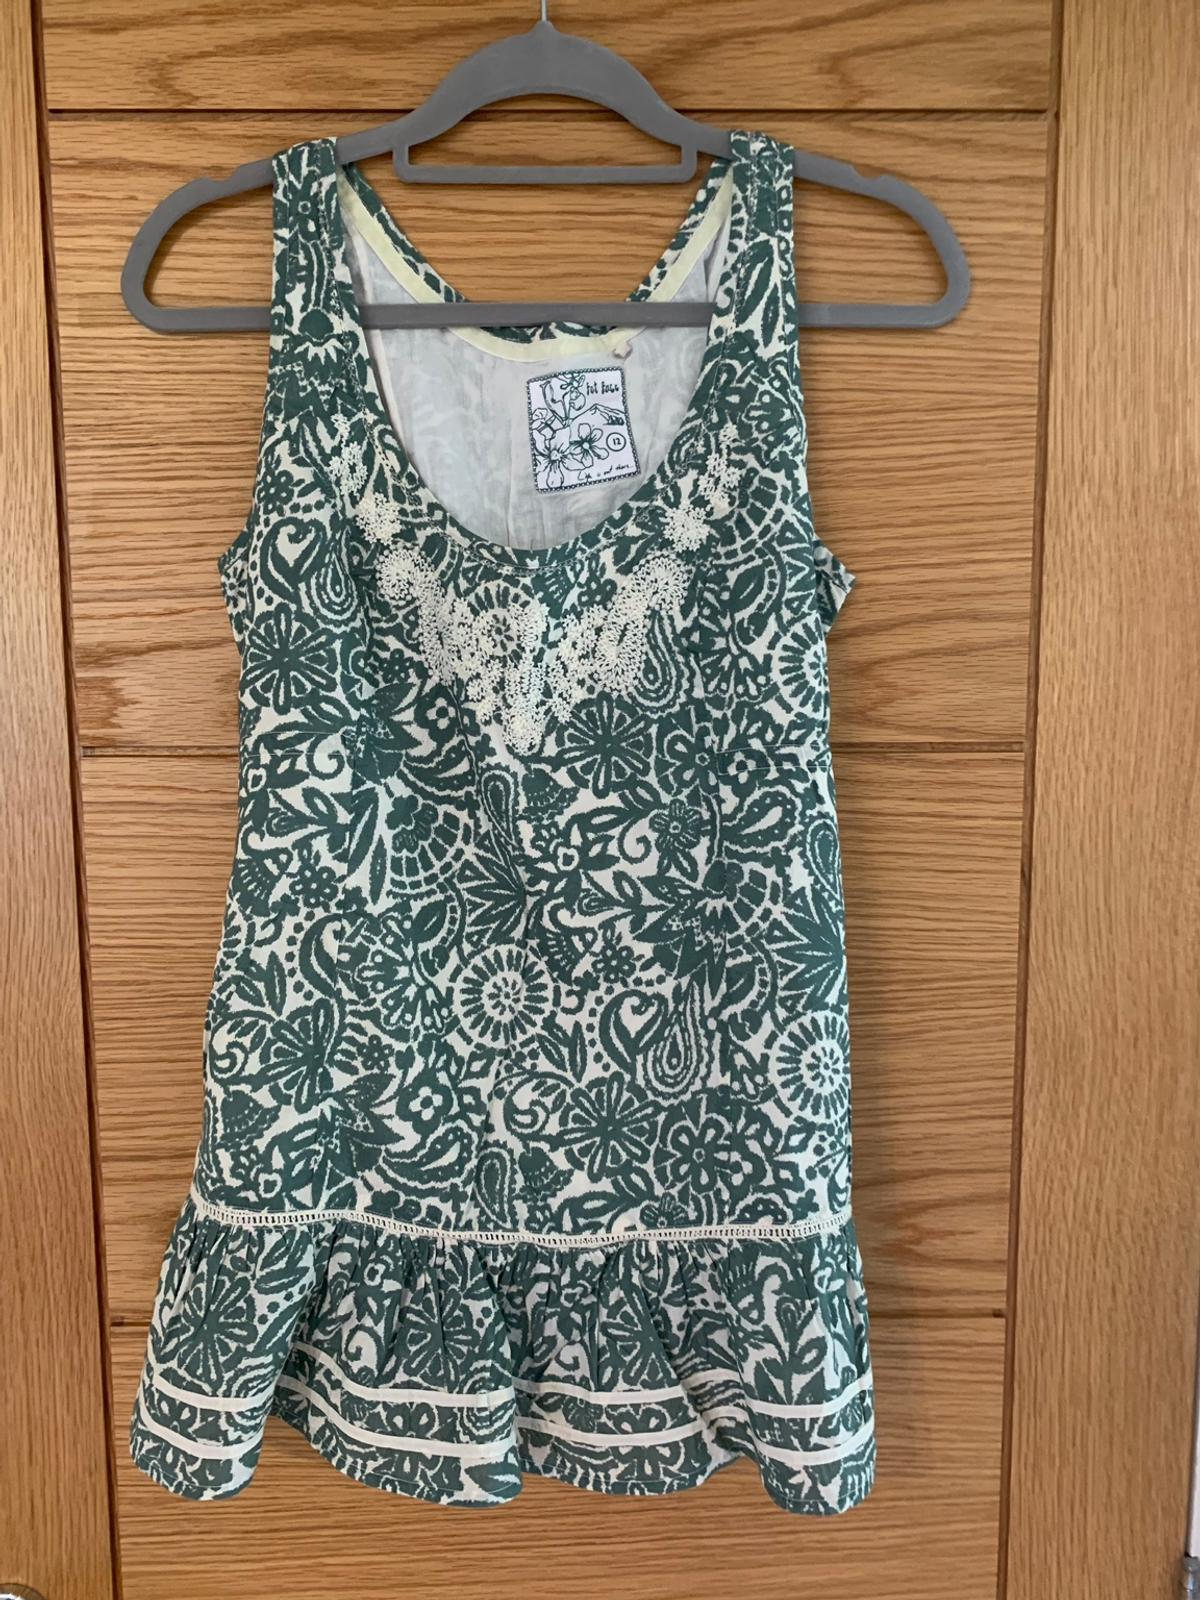 Excellent condition, only worn a couple of times. lovely pattern with tie back. From smoke and pet free home. Please see other items that I am selling as we are having a huge clear out.